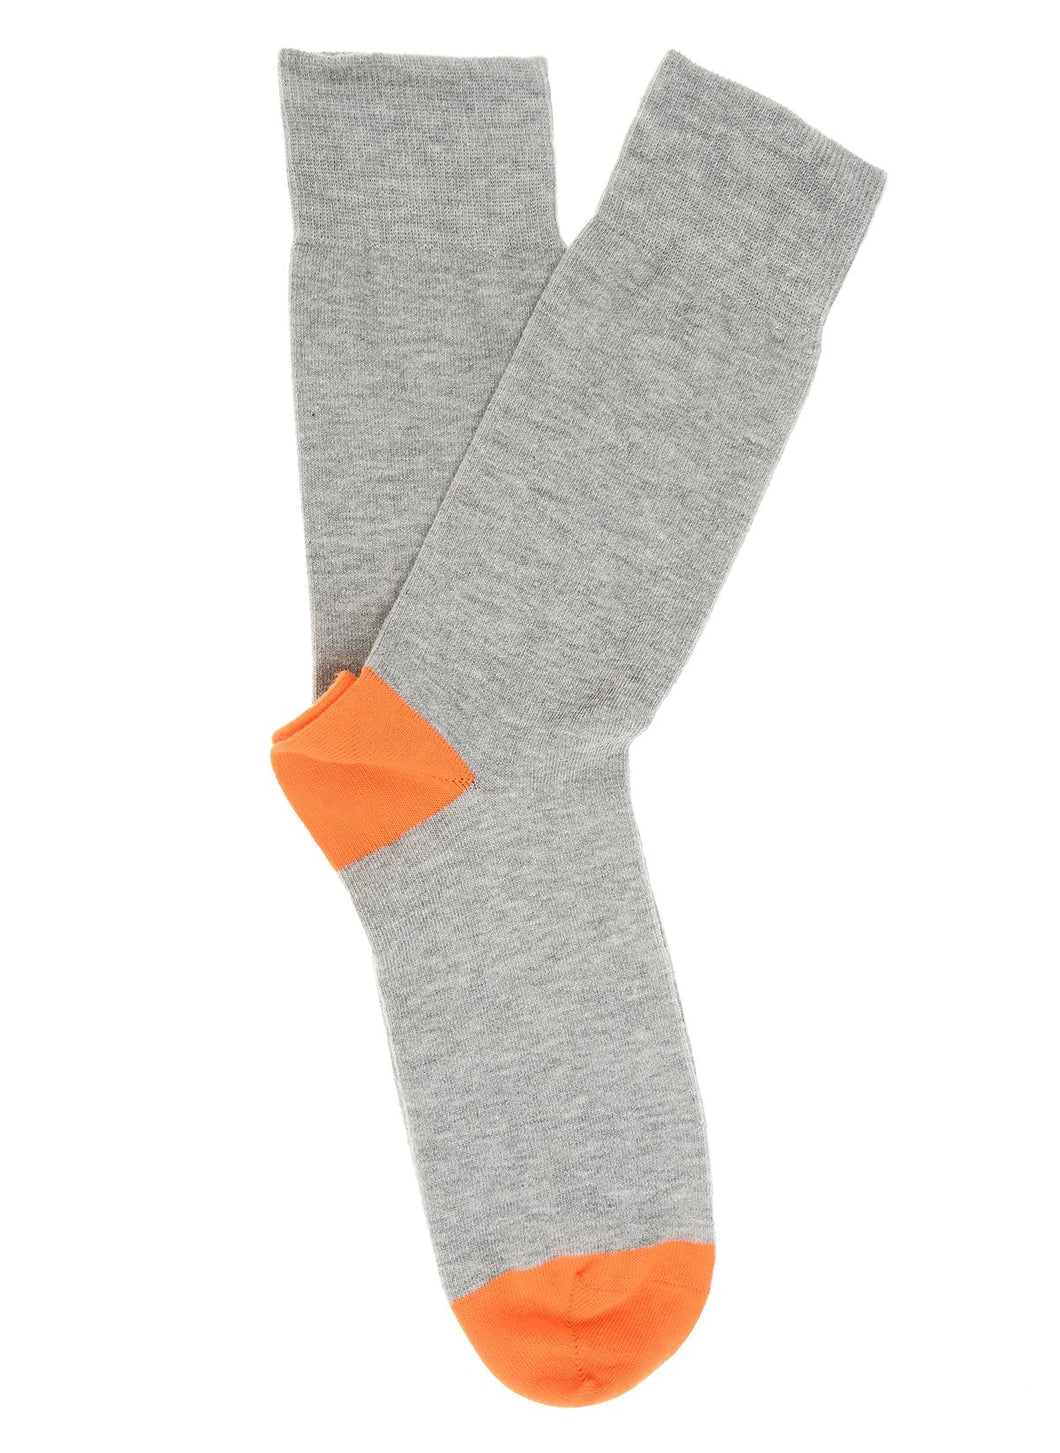 Colourful men socks, funky men socks, scented socks,seemless socks,seemfree socks, orange socks, grey socks